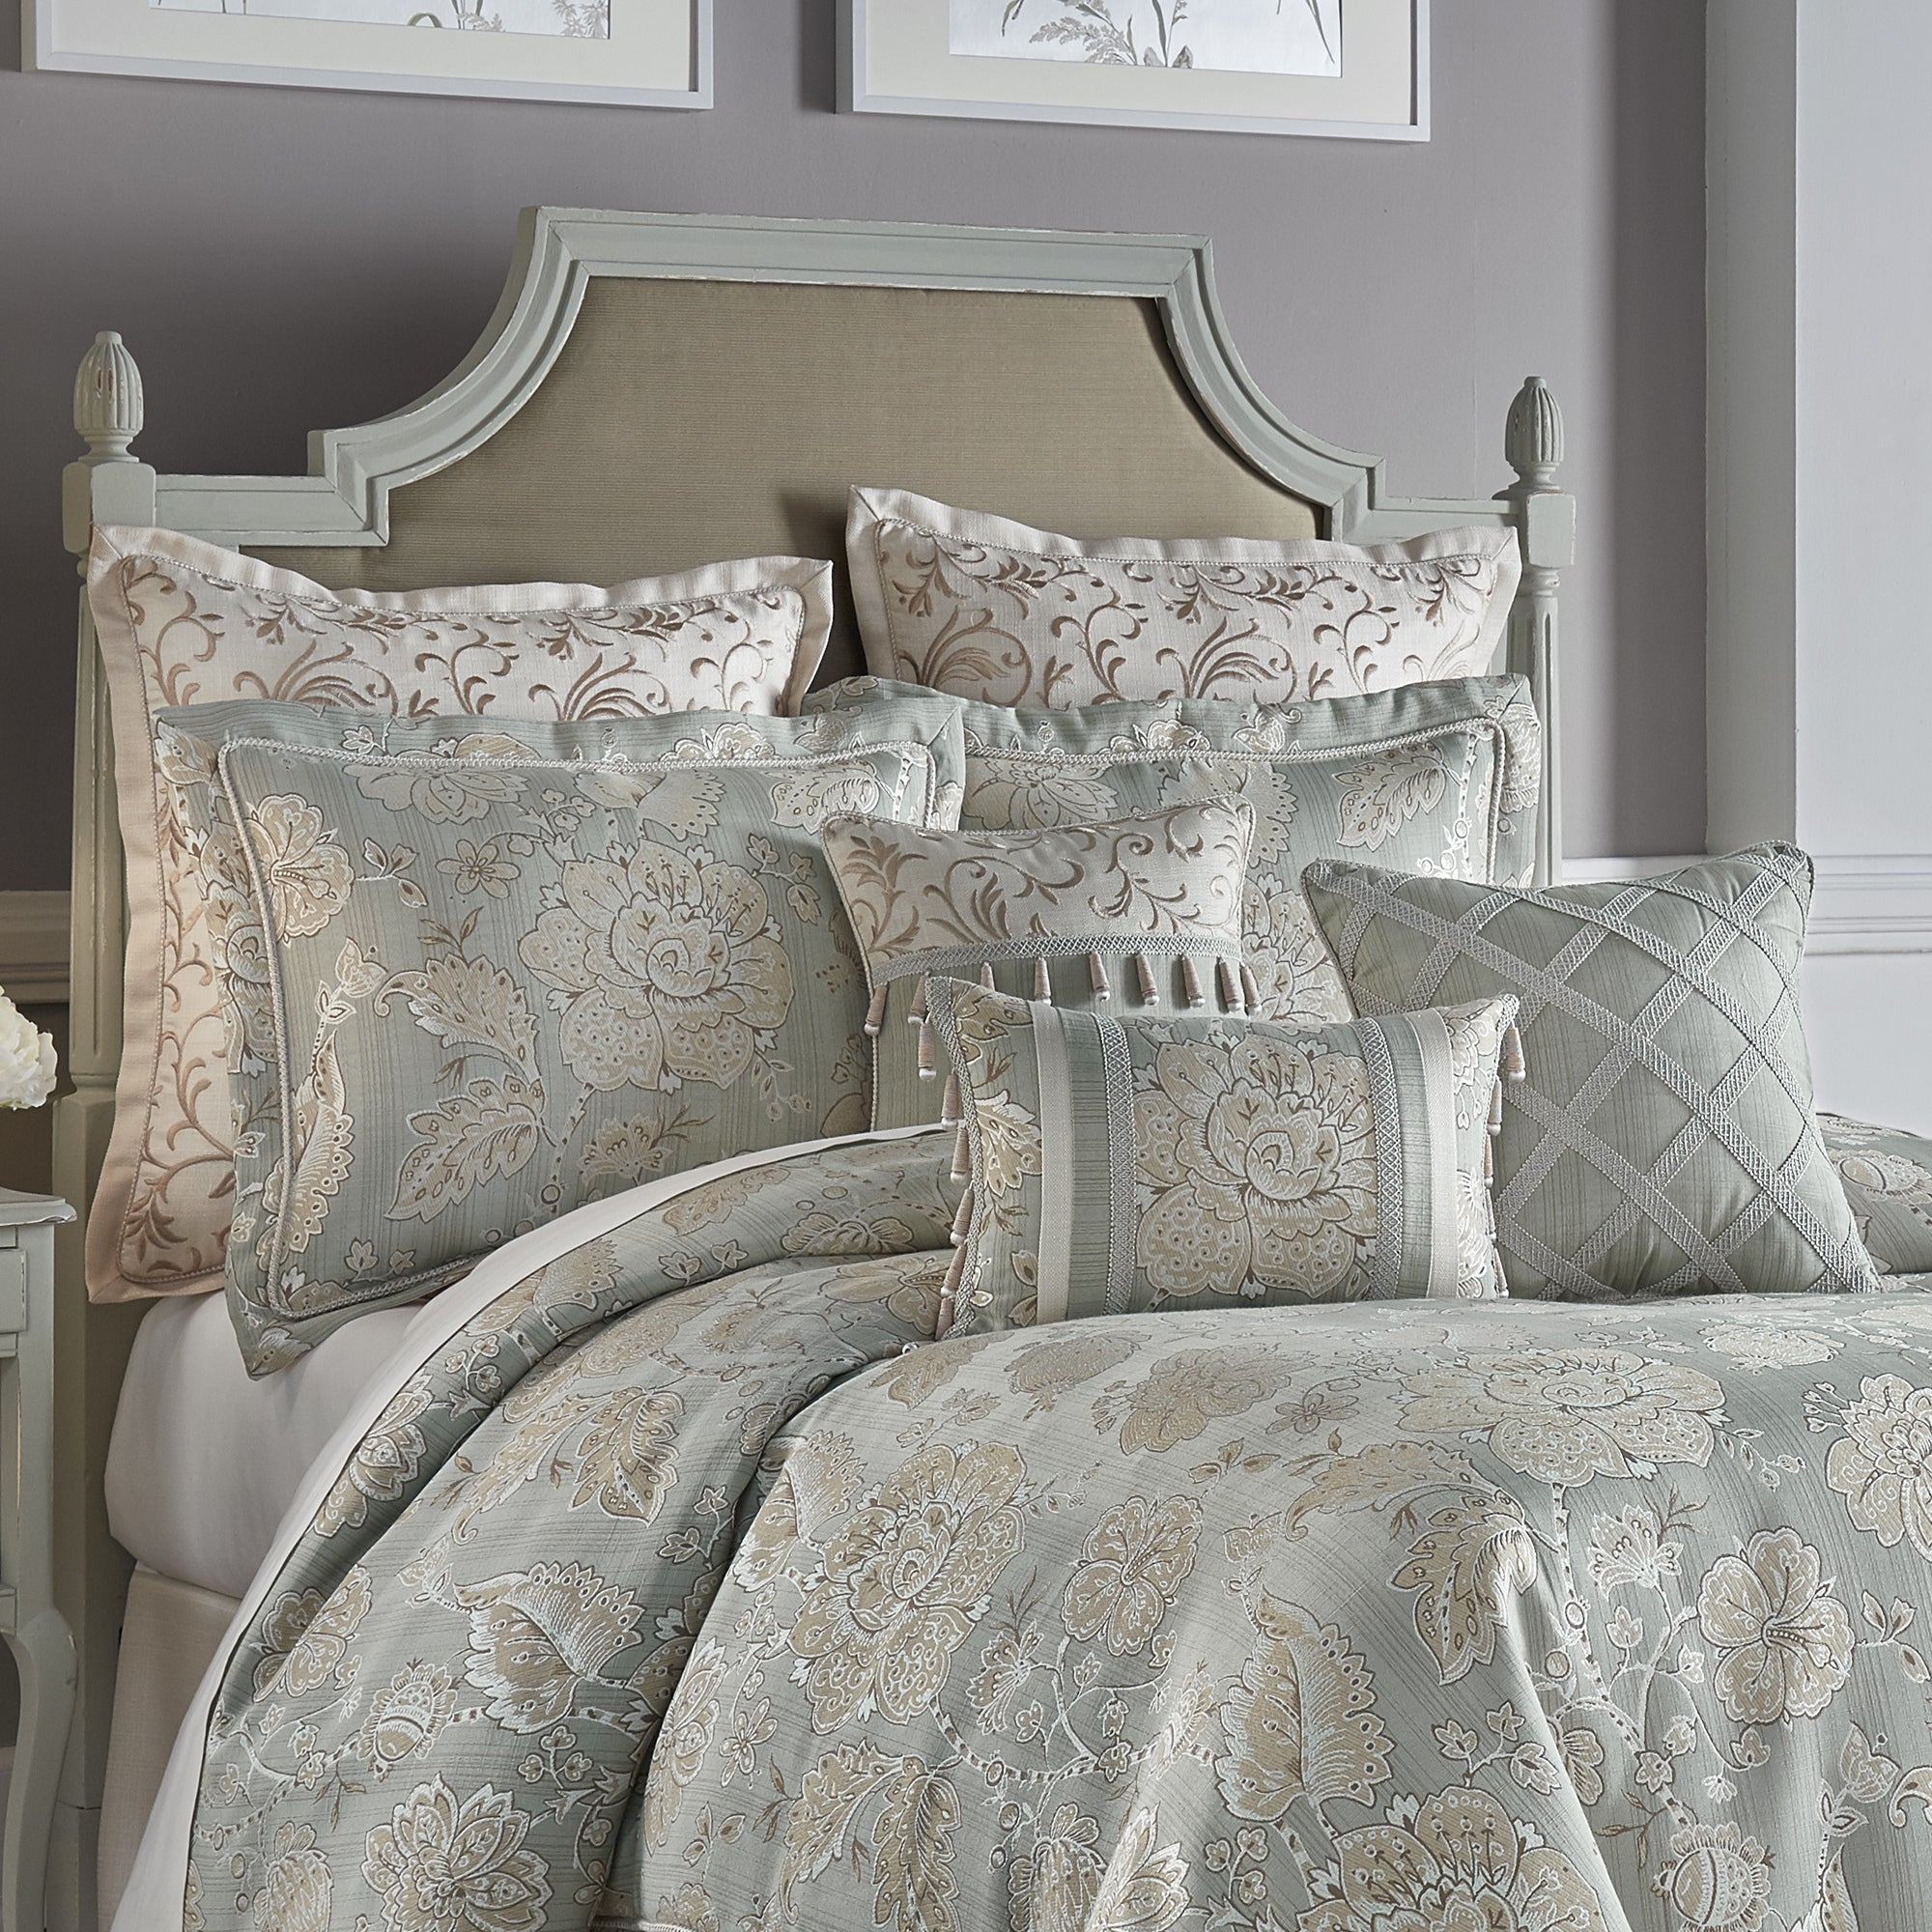 comforter wholesale best combine b and get linen fashion with collections sheet bedroom add sleep designed unique to a of touch style set s linens night your lyon the effortless bedding category